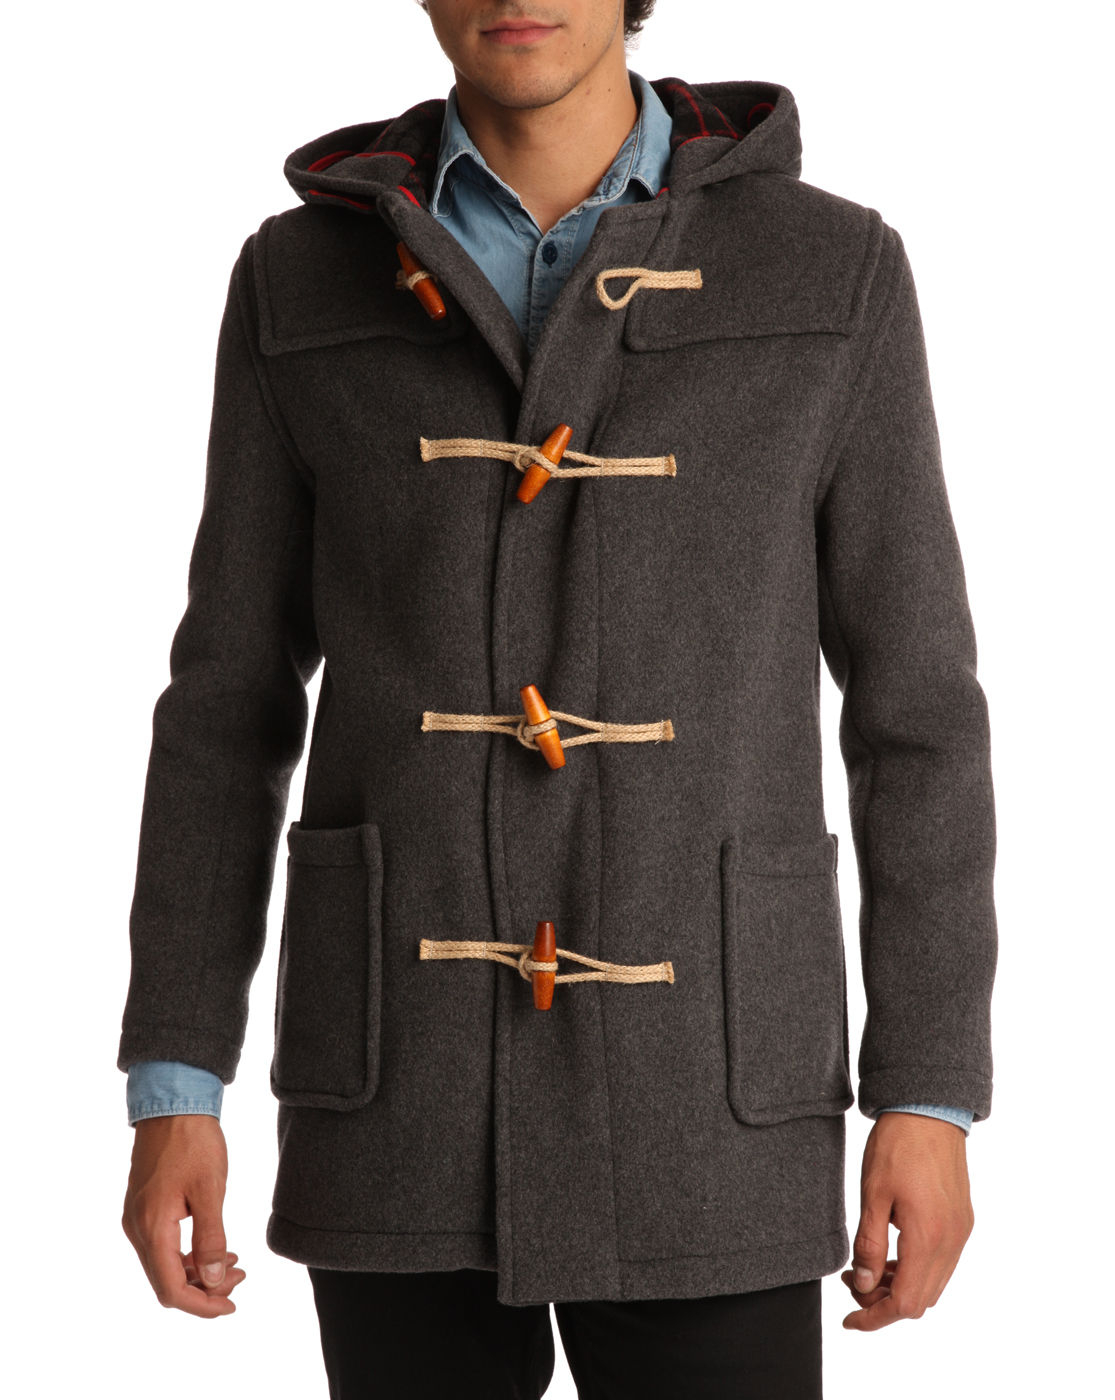 Gloverall Mens Duffle Coat - Coat Nj